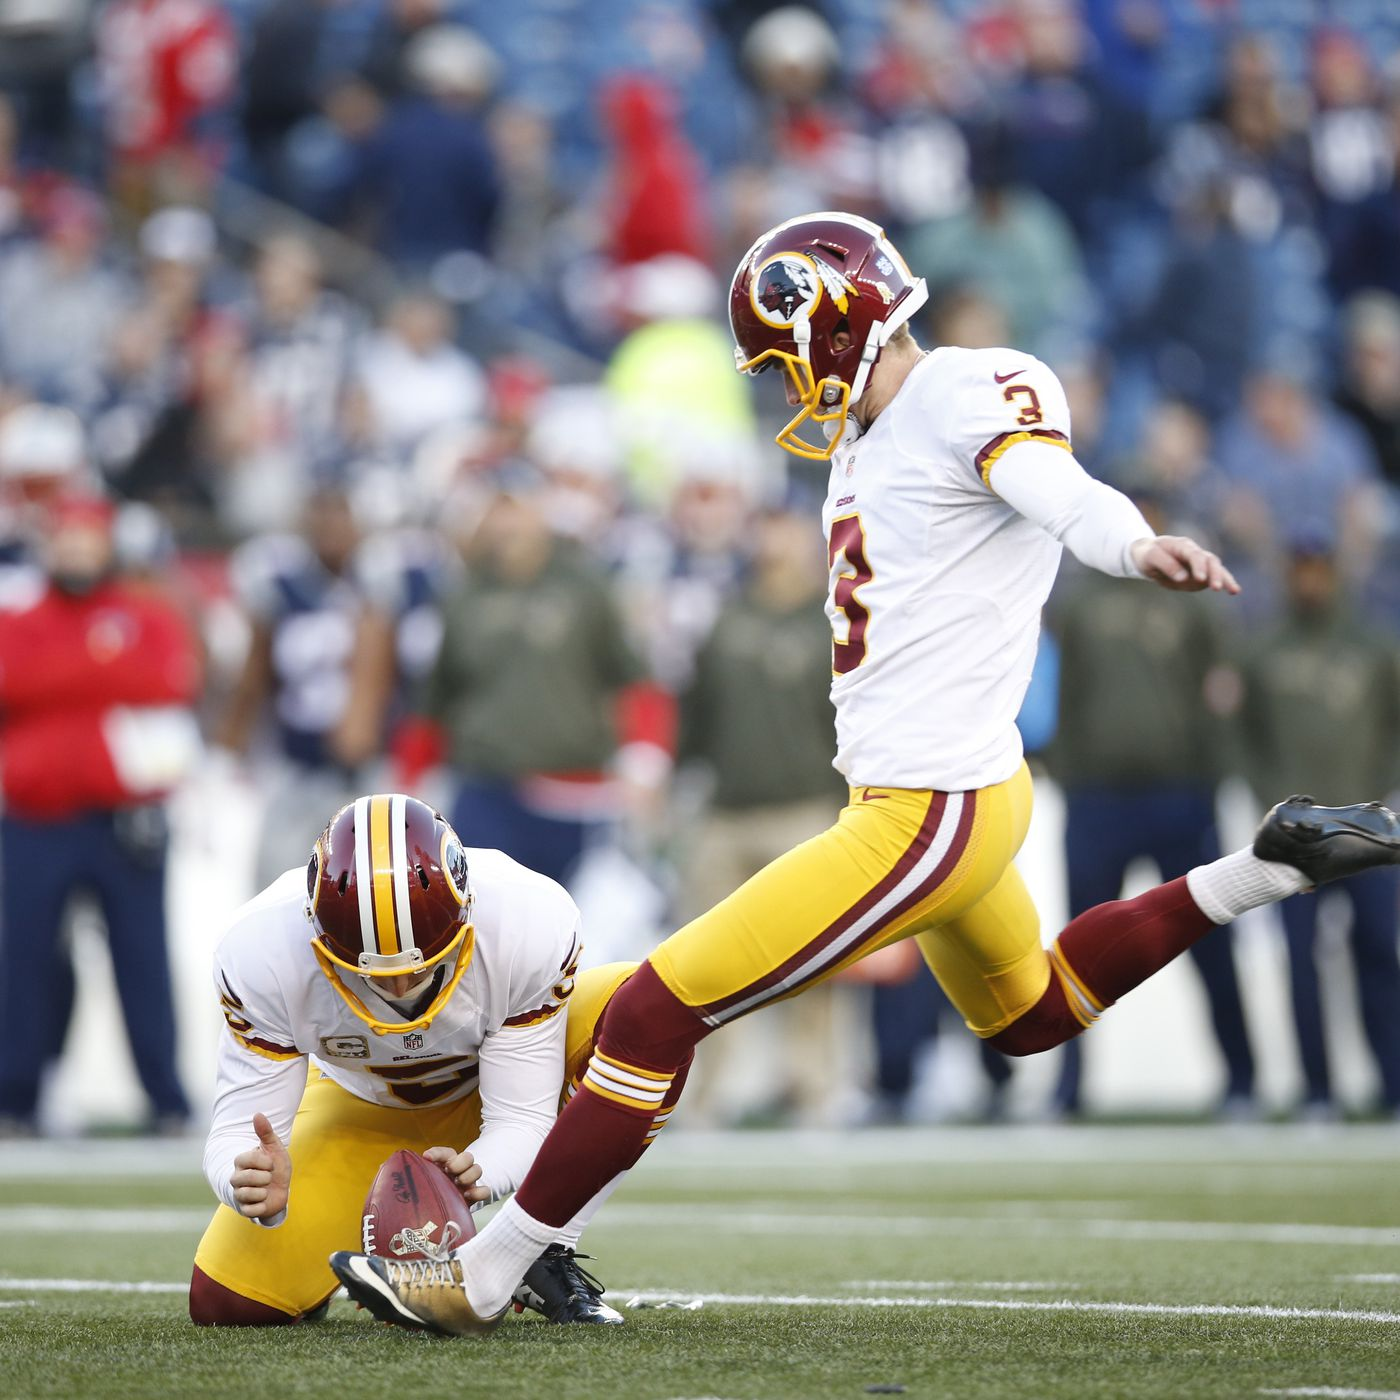 huge discount 6d035 29522 Redskins Sign Punter Tress Way to Five-Year Extension - Hogs ...